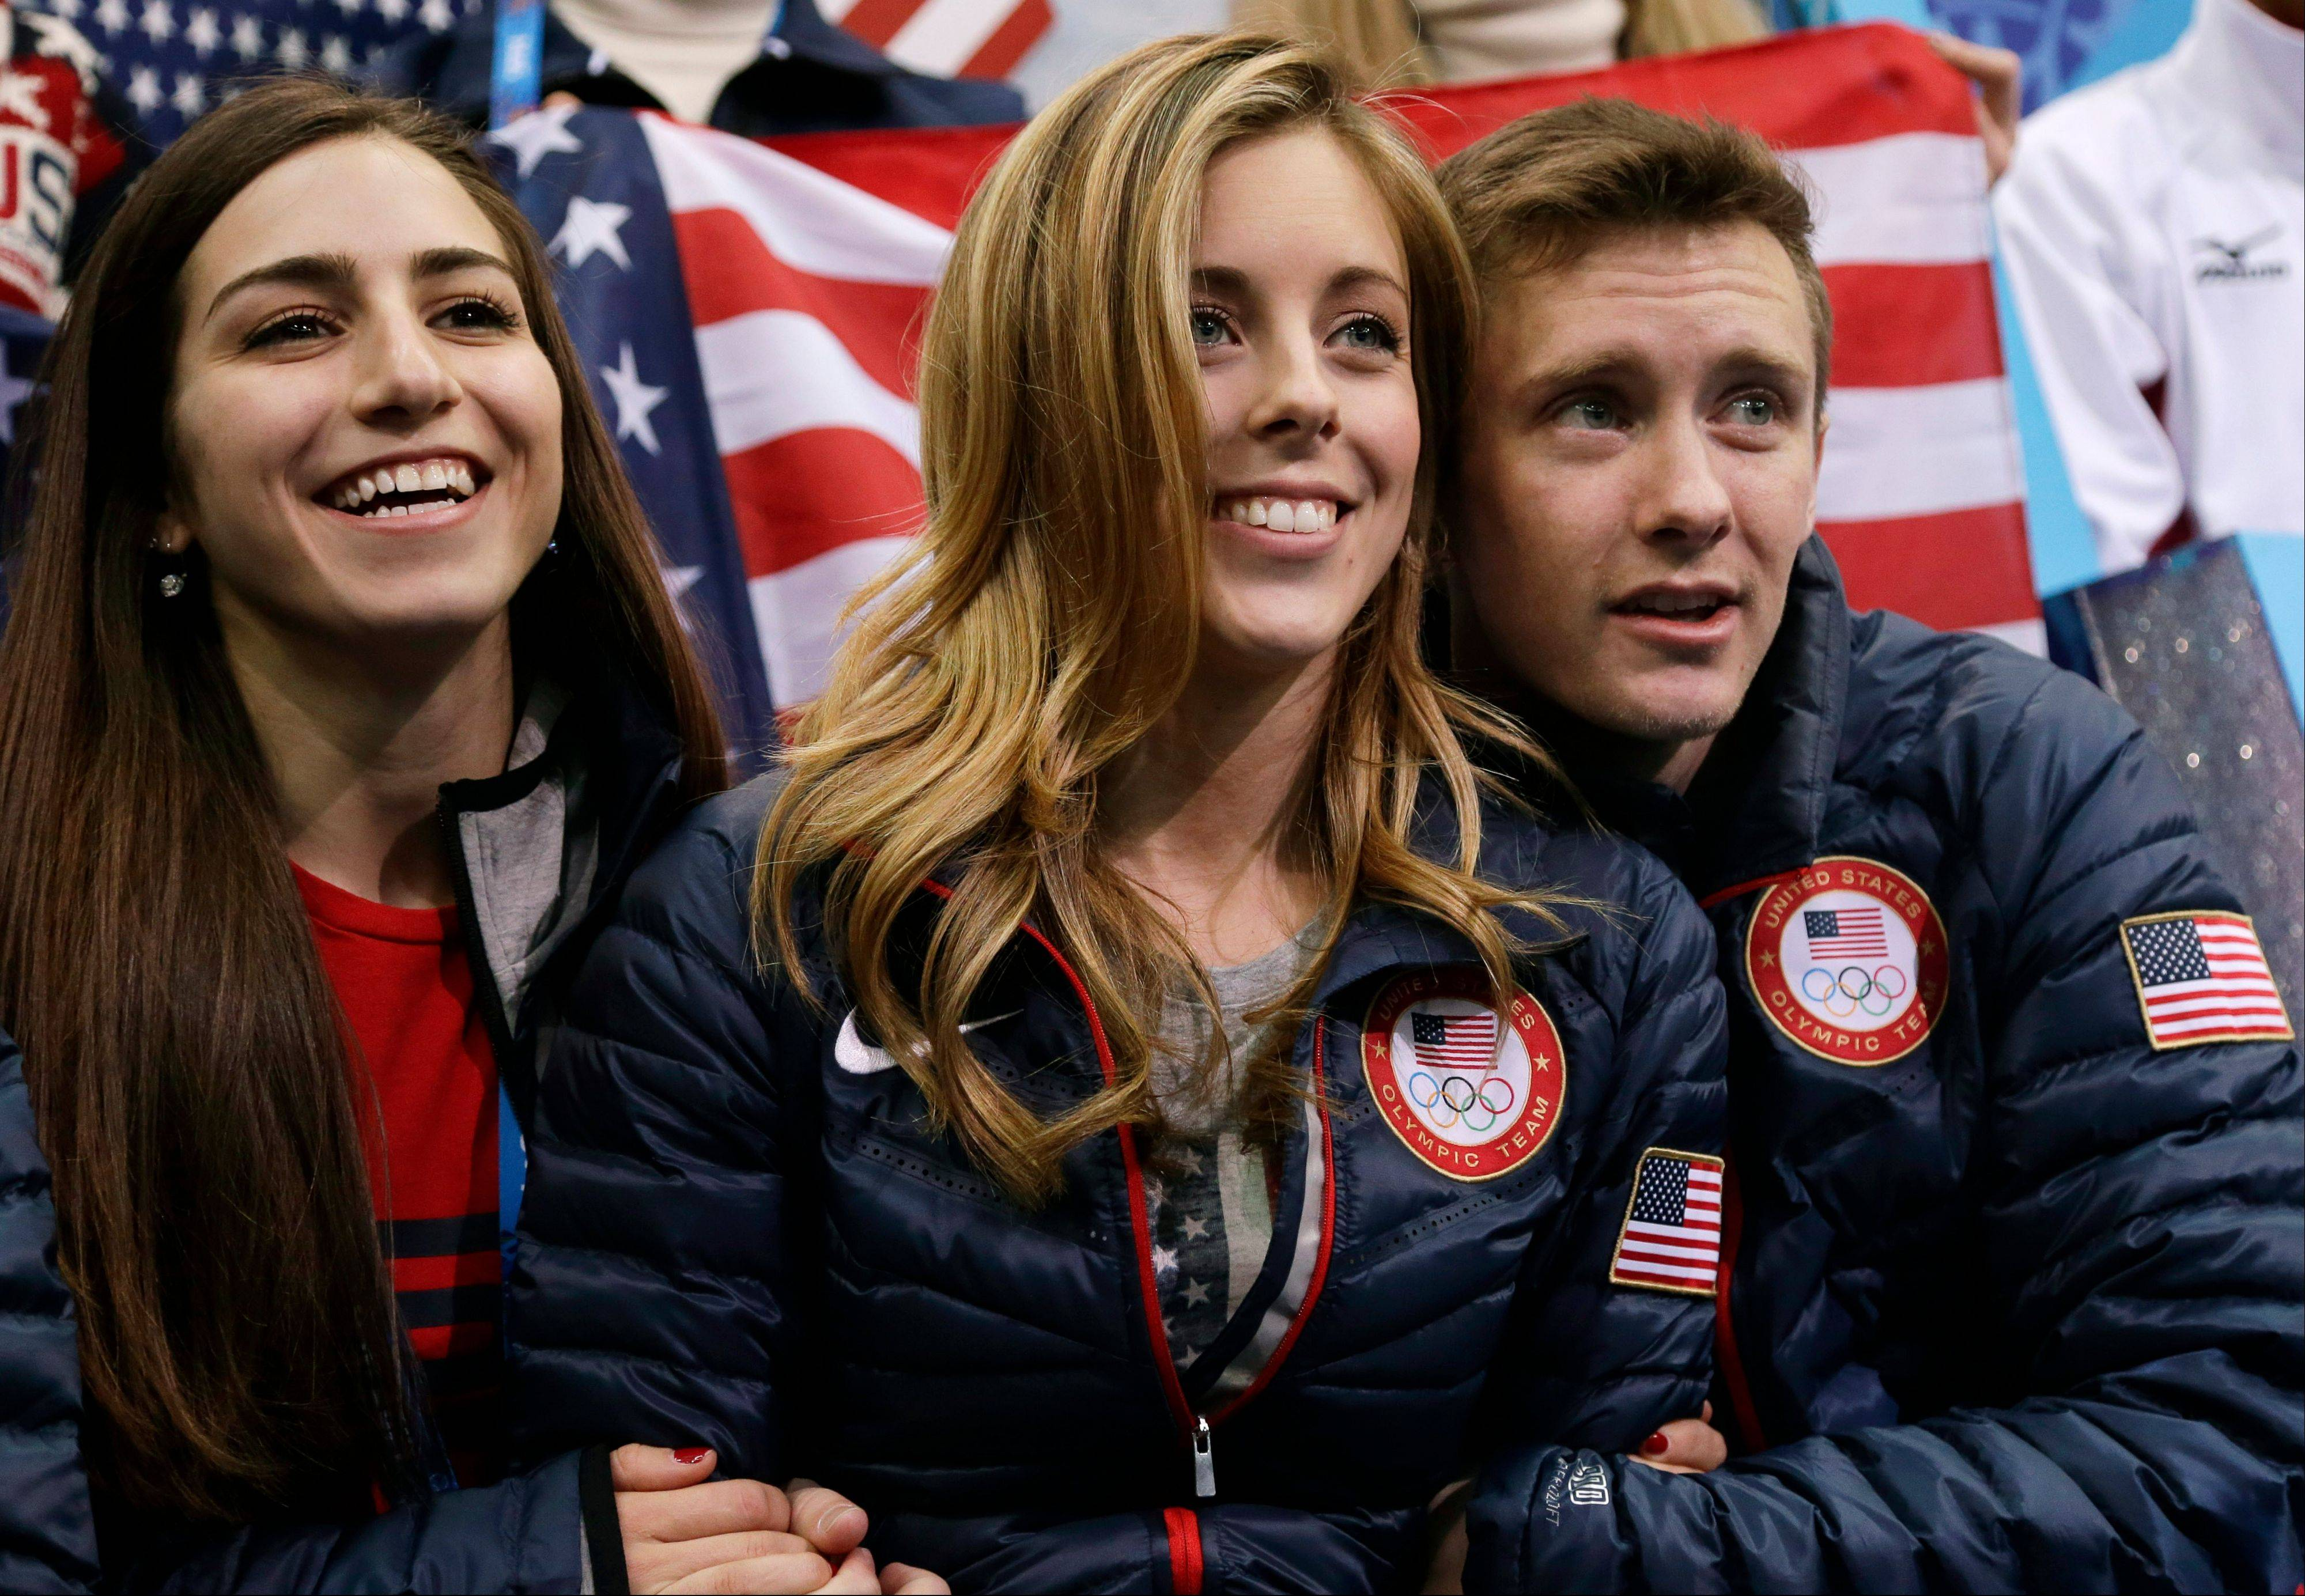 From left, Marissa Castelli, Ashley Wagner and Jeremy Abbott watch Jason Brown of the United States compete in the men's team free skate figure skating competition at the Iceberg Skating Palace during the 2014 Winter Olympics, Sunday, Feb. 9, 2014, in Sochi, Russia.